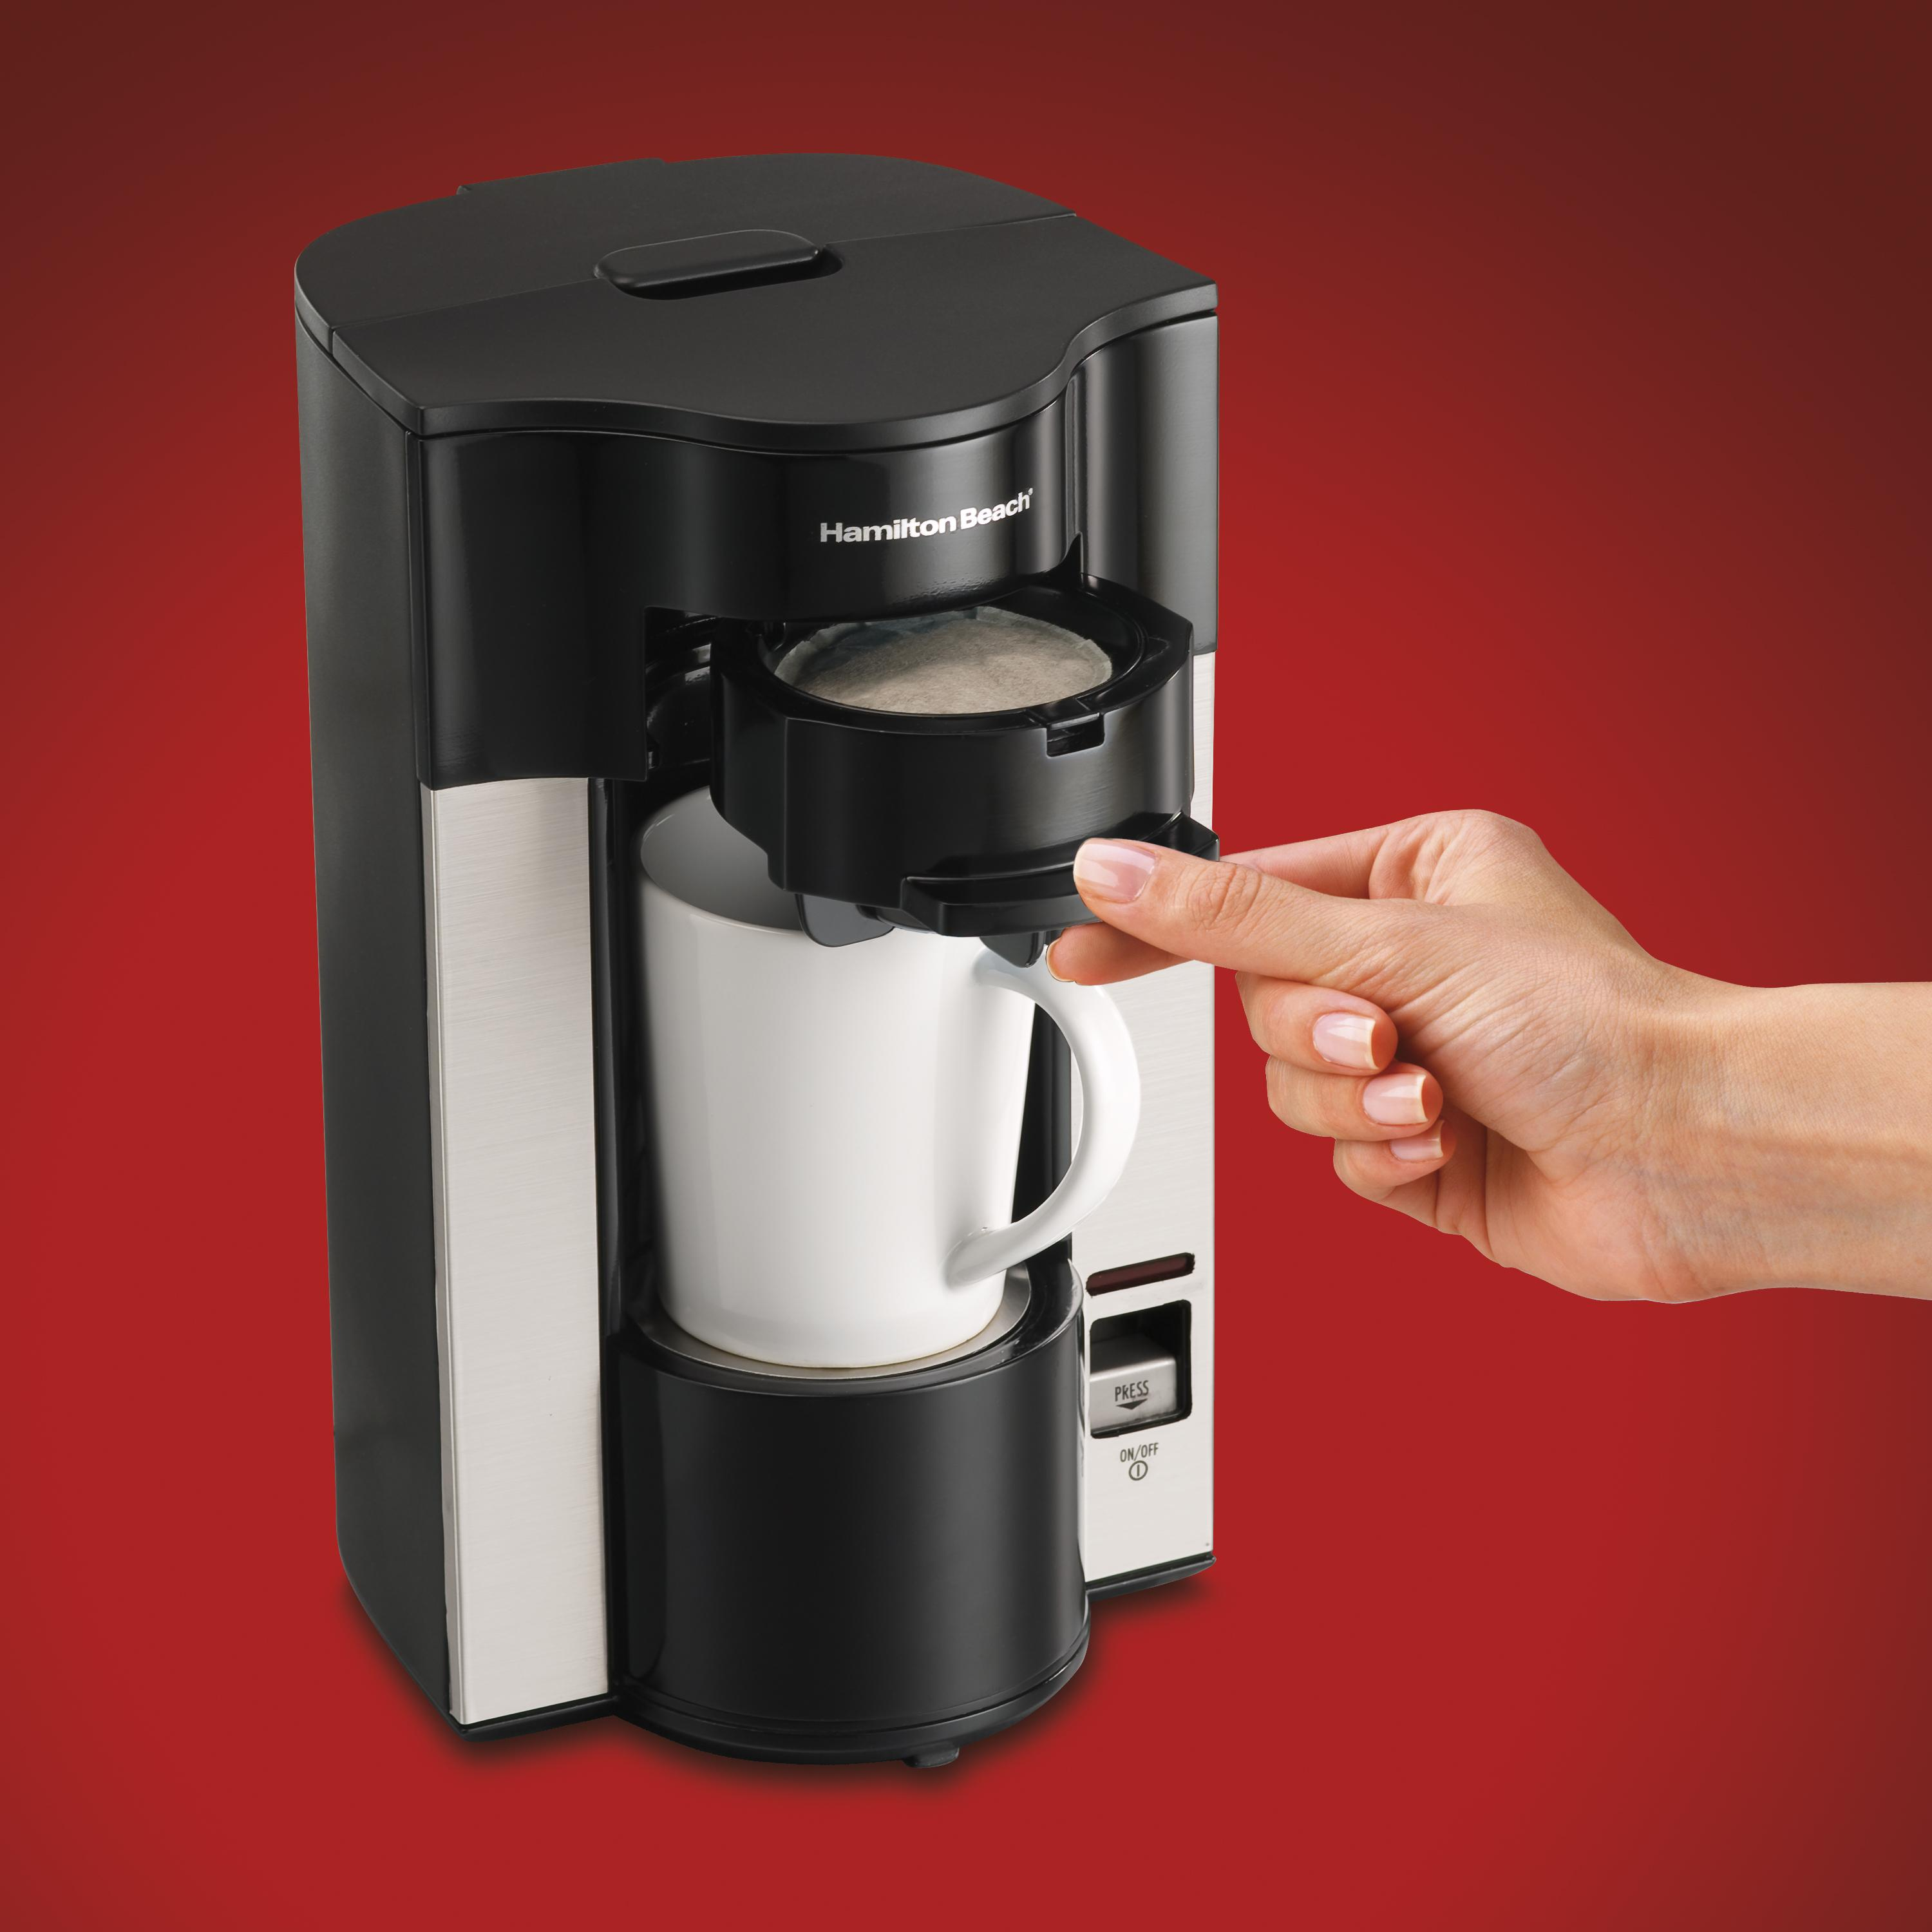 Personal Coffee Maker For Office : Amazon.com: Hamilton Beach Stay or Go Personal Cup Pod Coffee Maker 49990Z: Single Serve Brewing ...